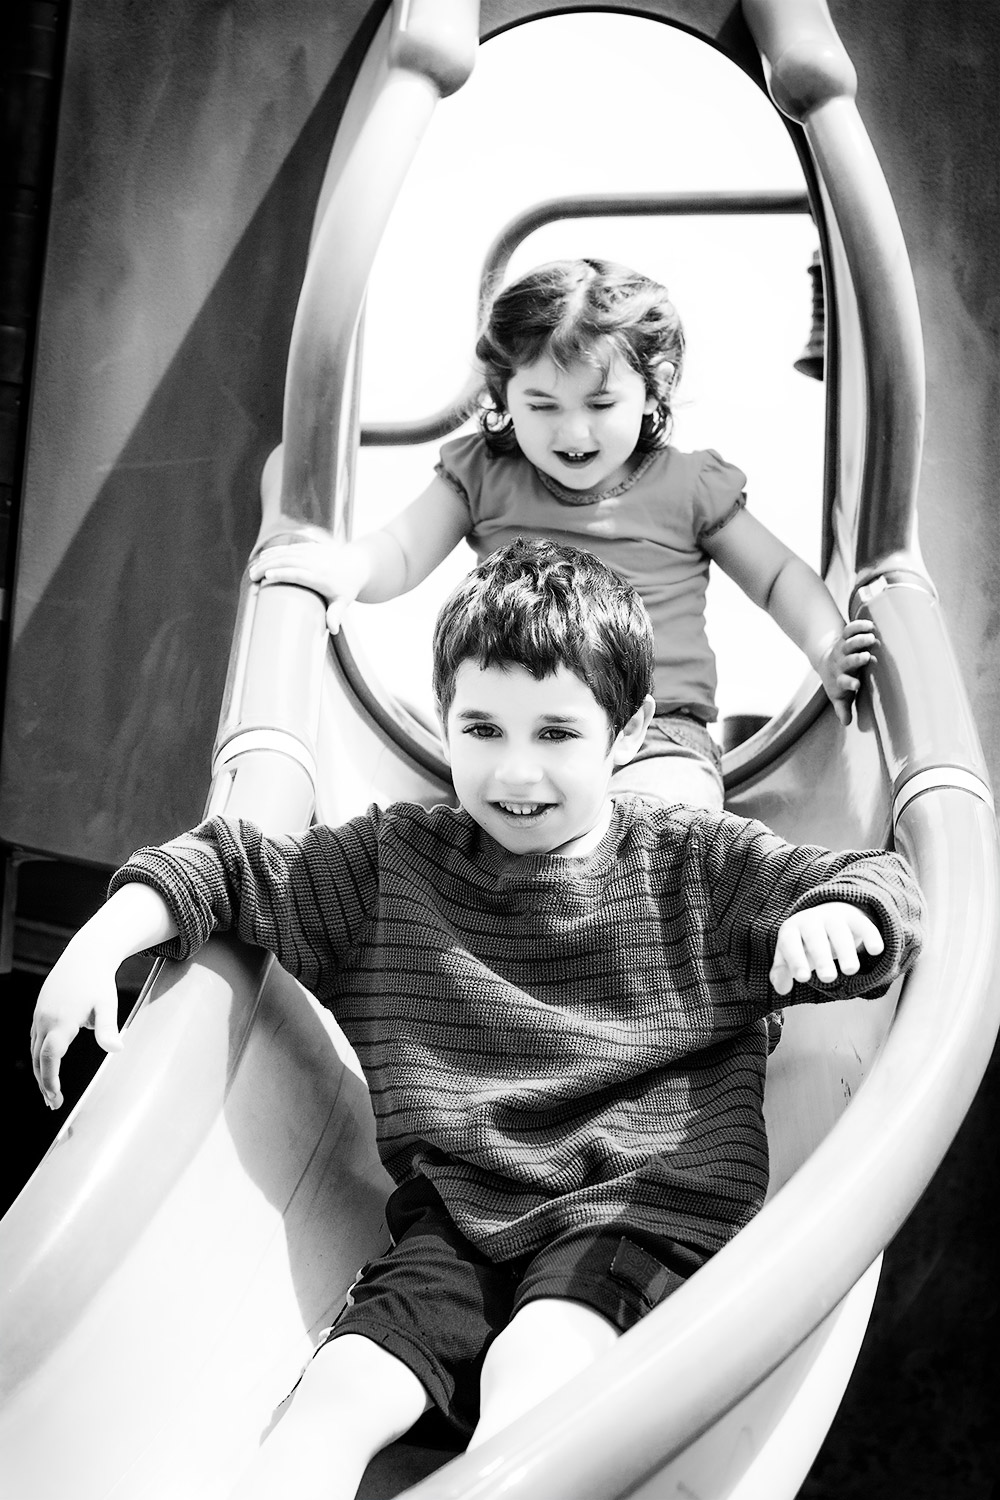 Portrait-of-Brother-Sister-on-Slide